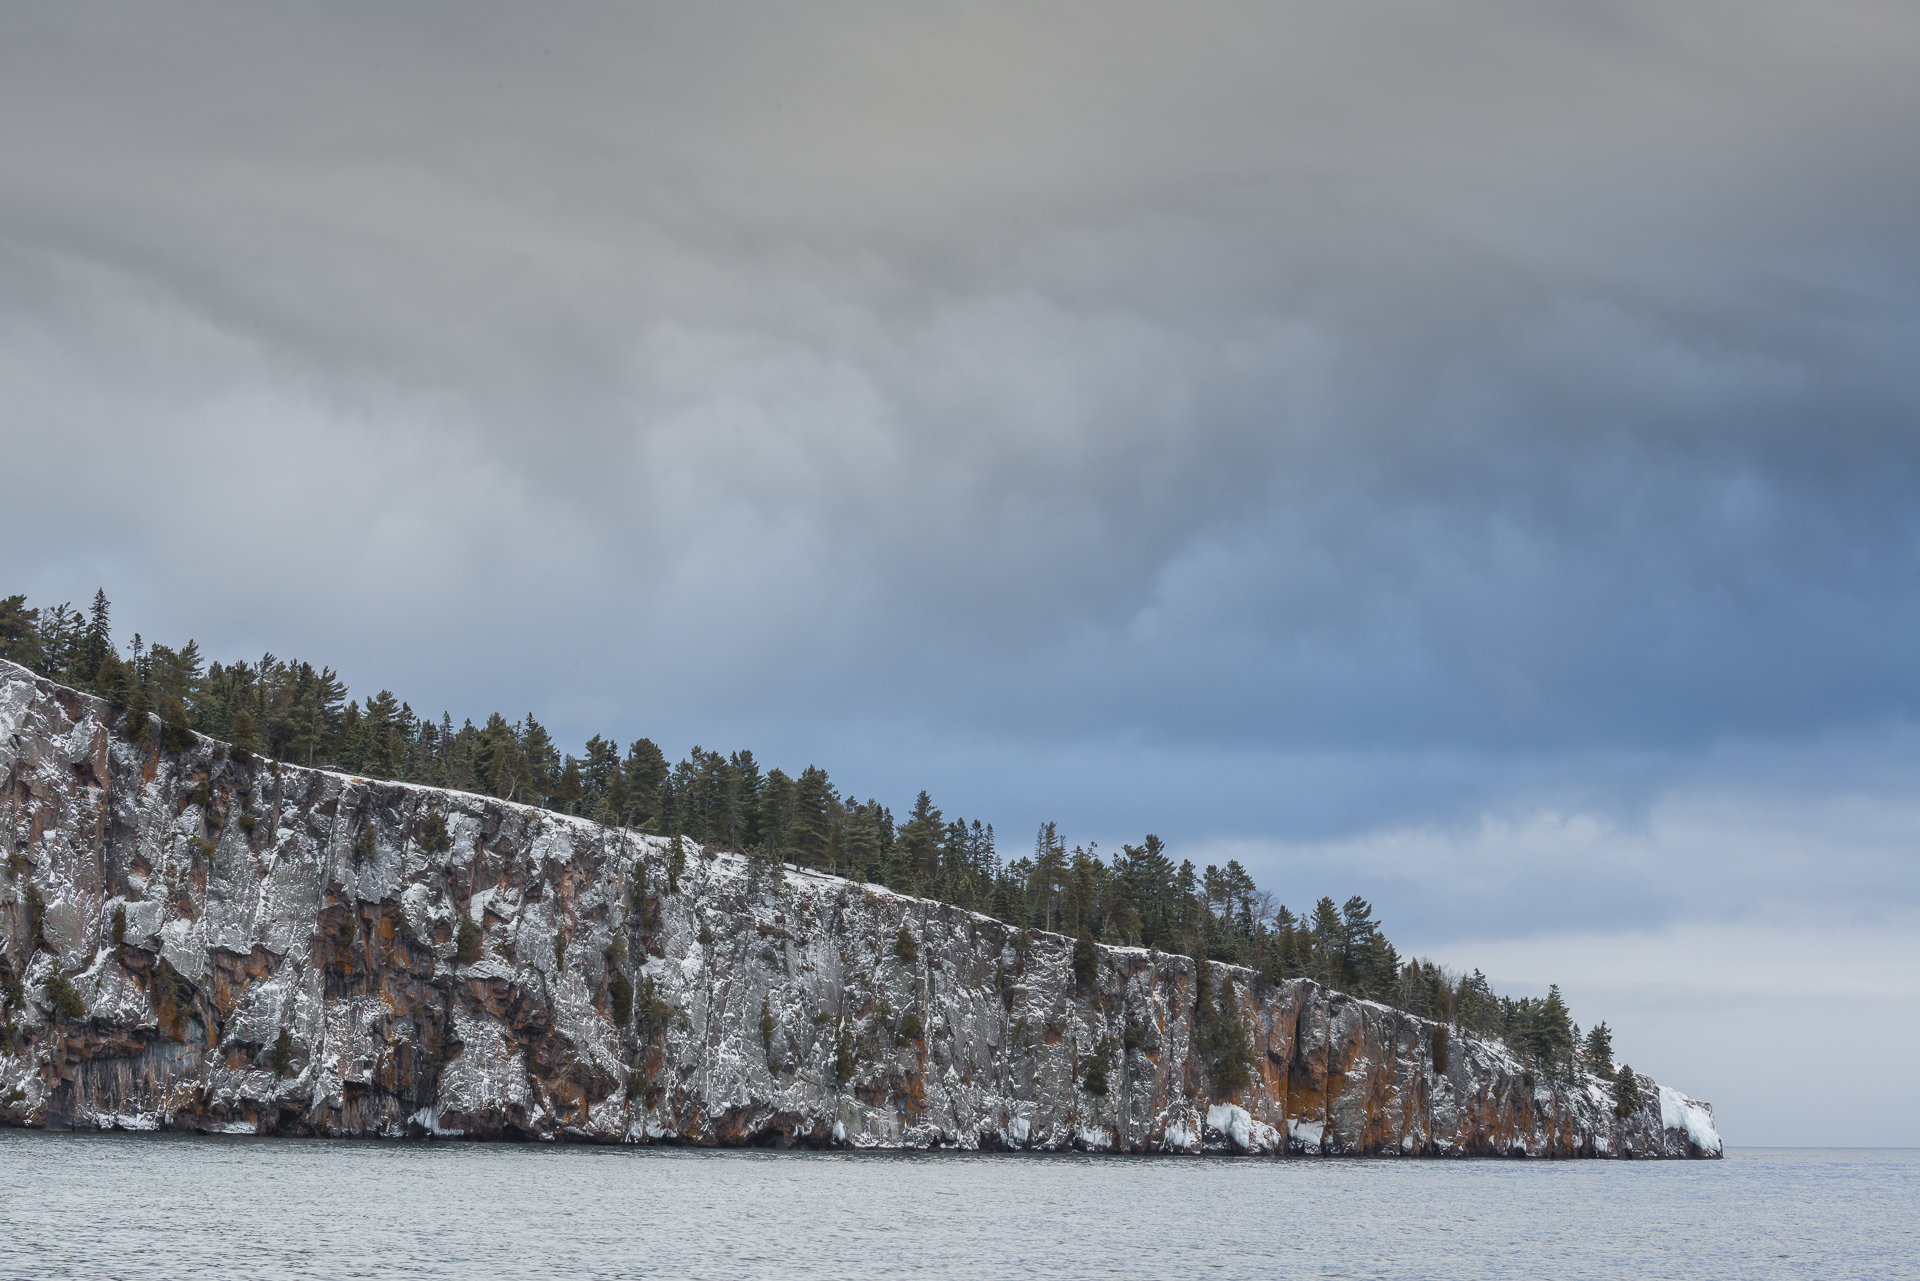 Shovel Point storm clouds: Tettegouche State Park